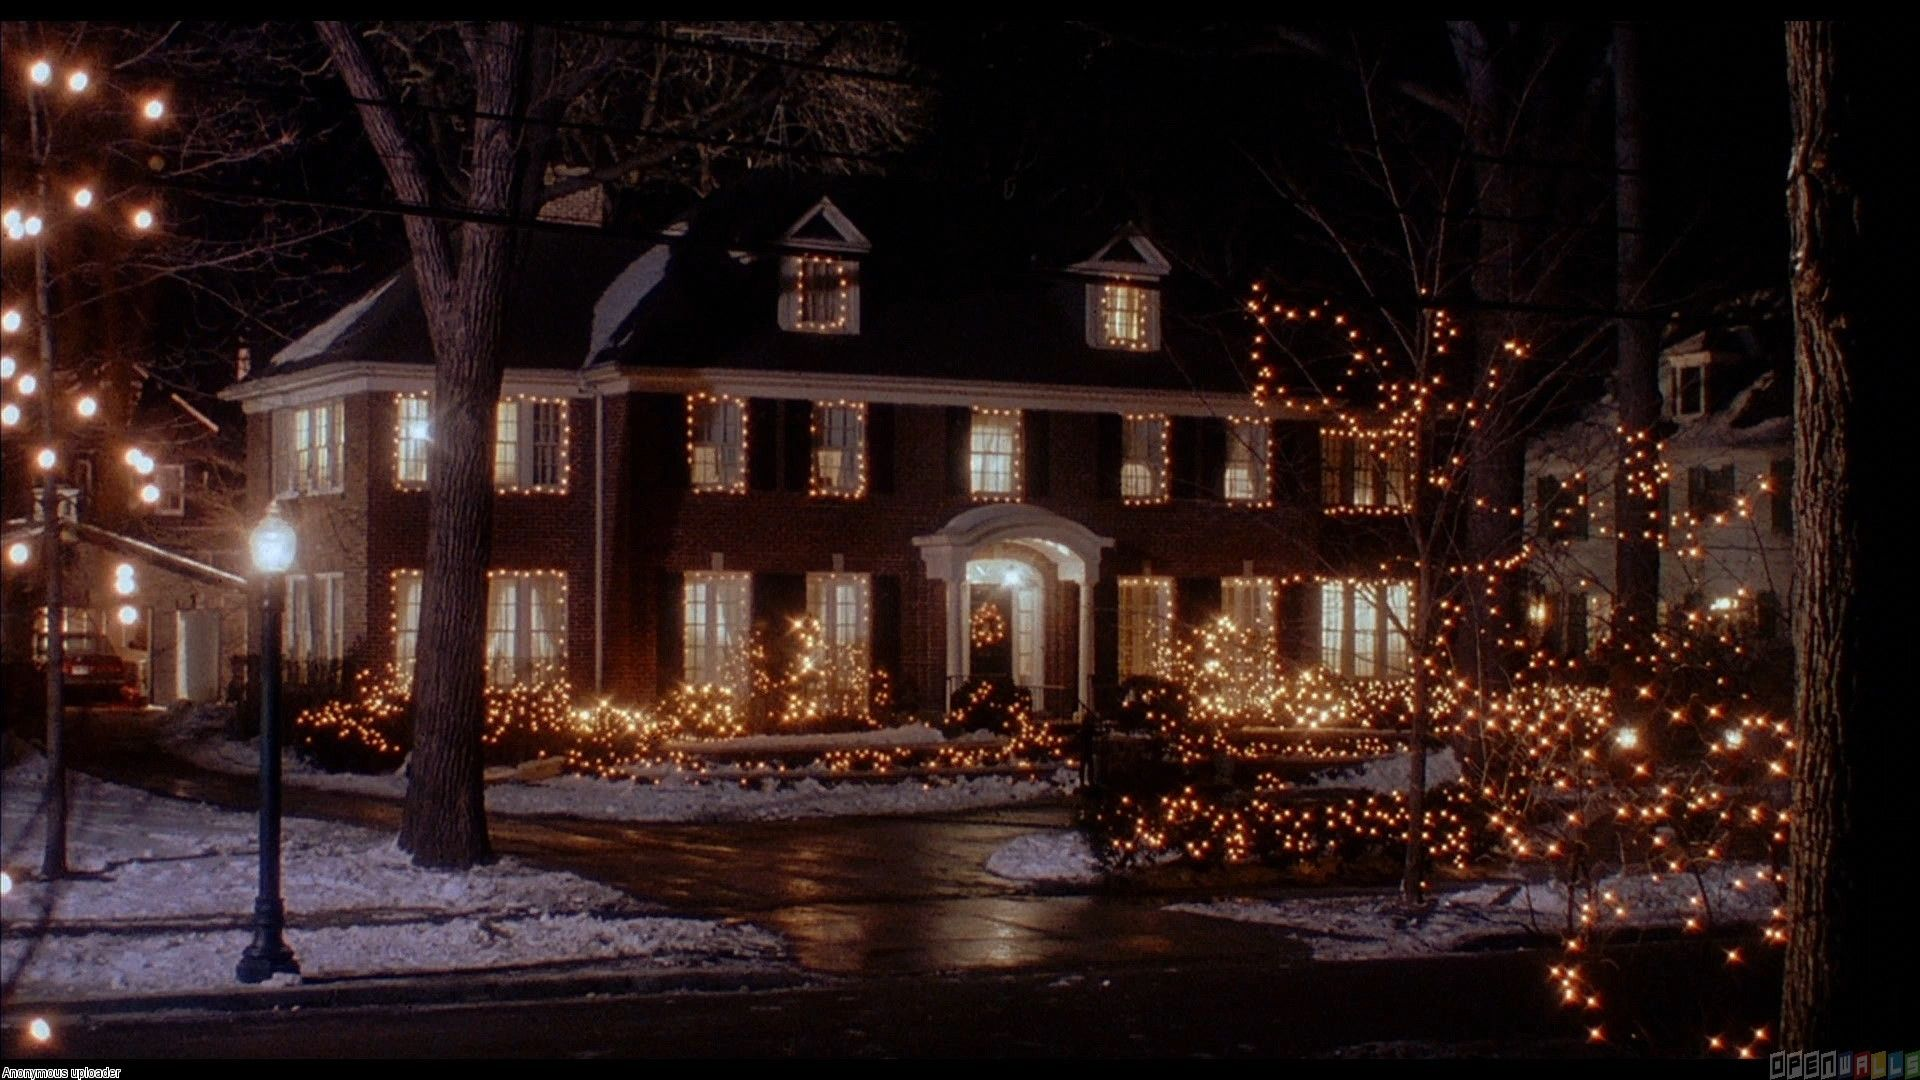 Home Alone Wallpapers Top Free Home Alone Backgrounds Wallpaperaccess